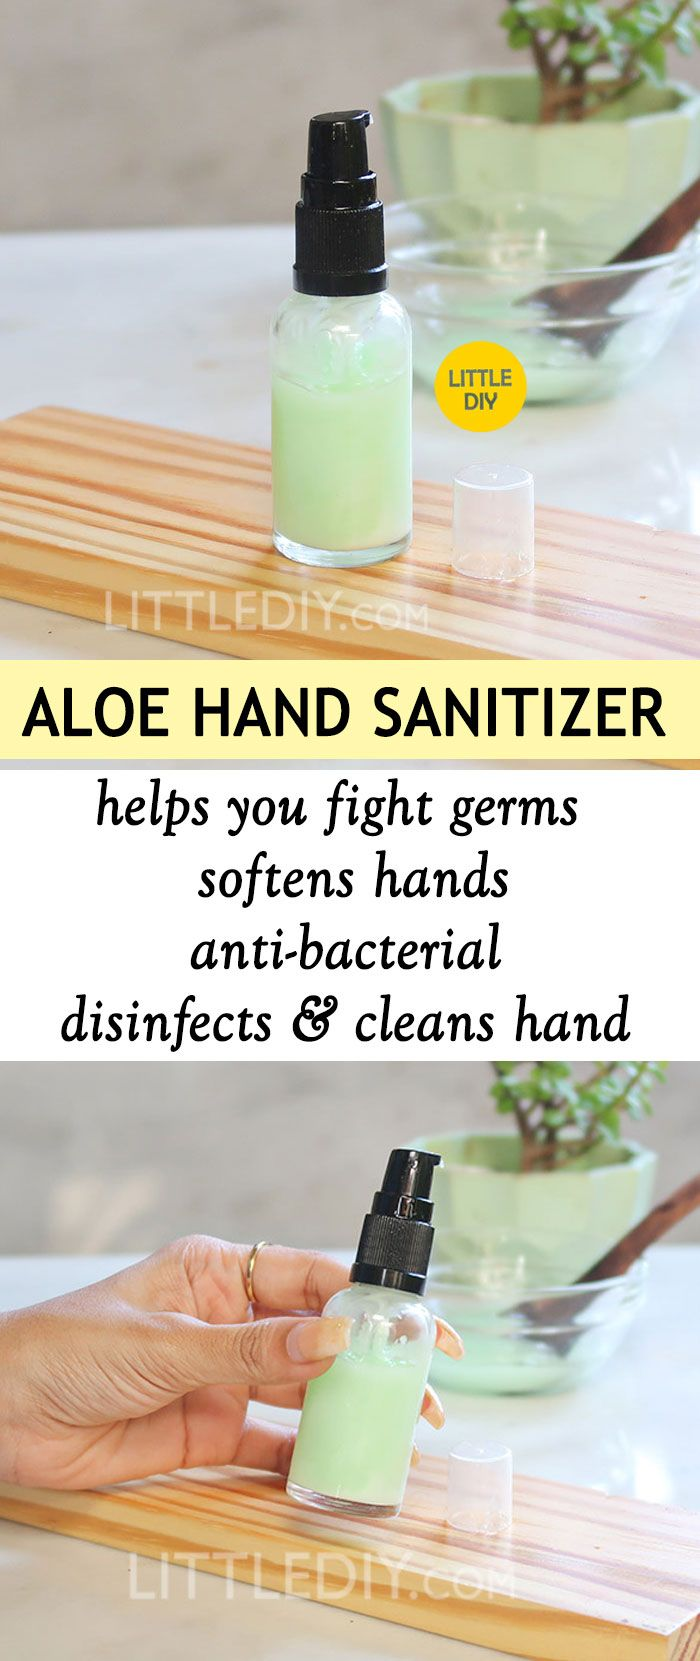 Homemade Natural Aloe Vera Hand Sanitizer Aloes Aloes Et Huiles